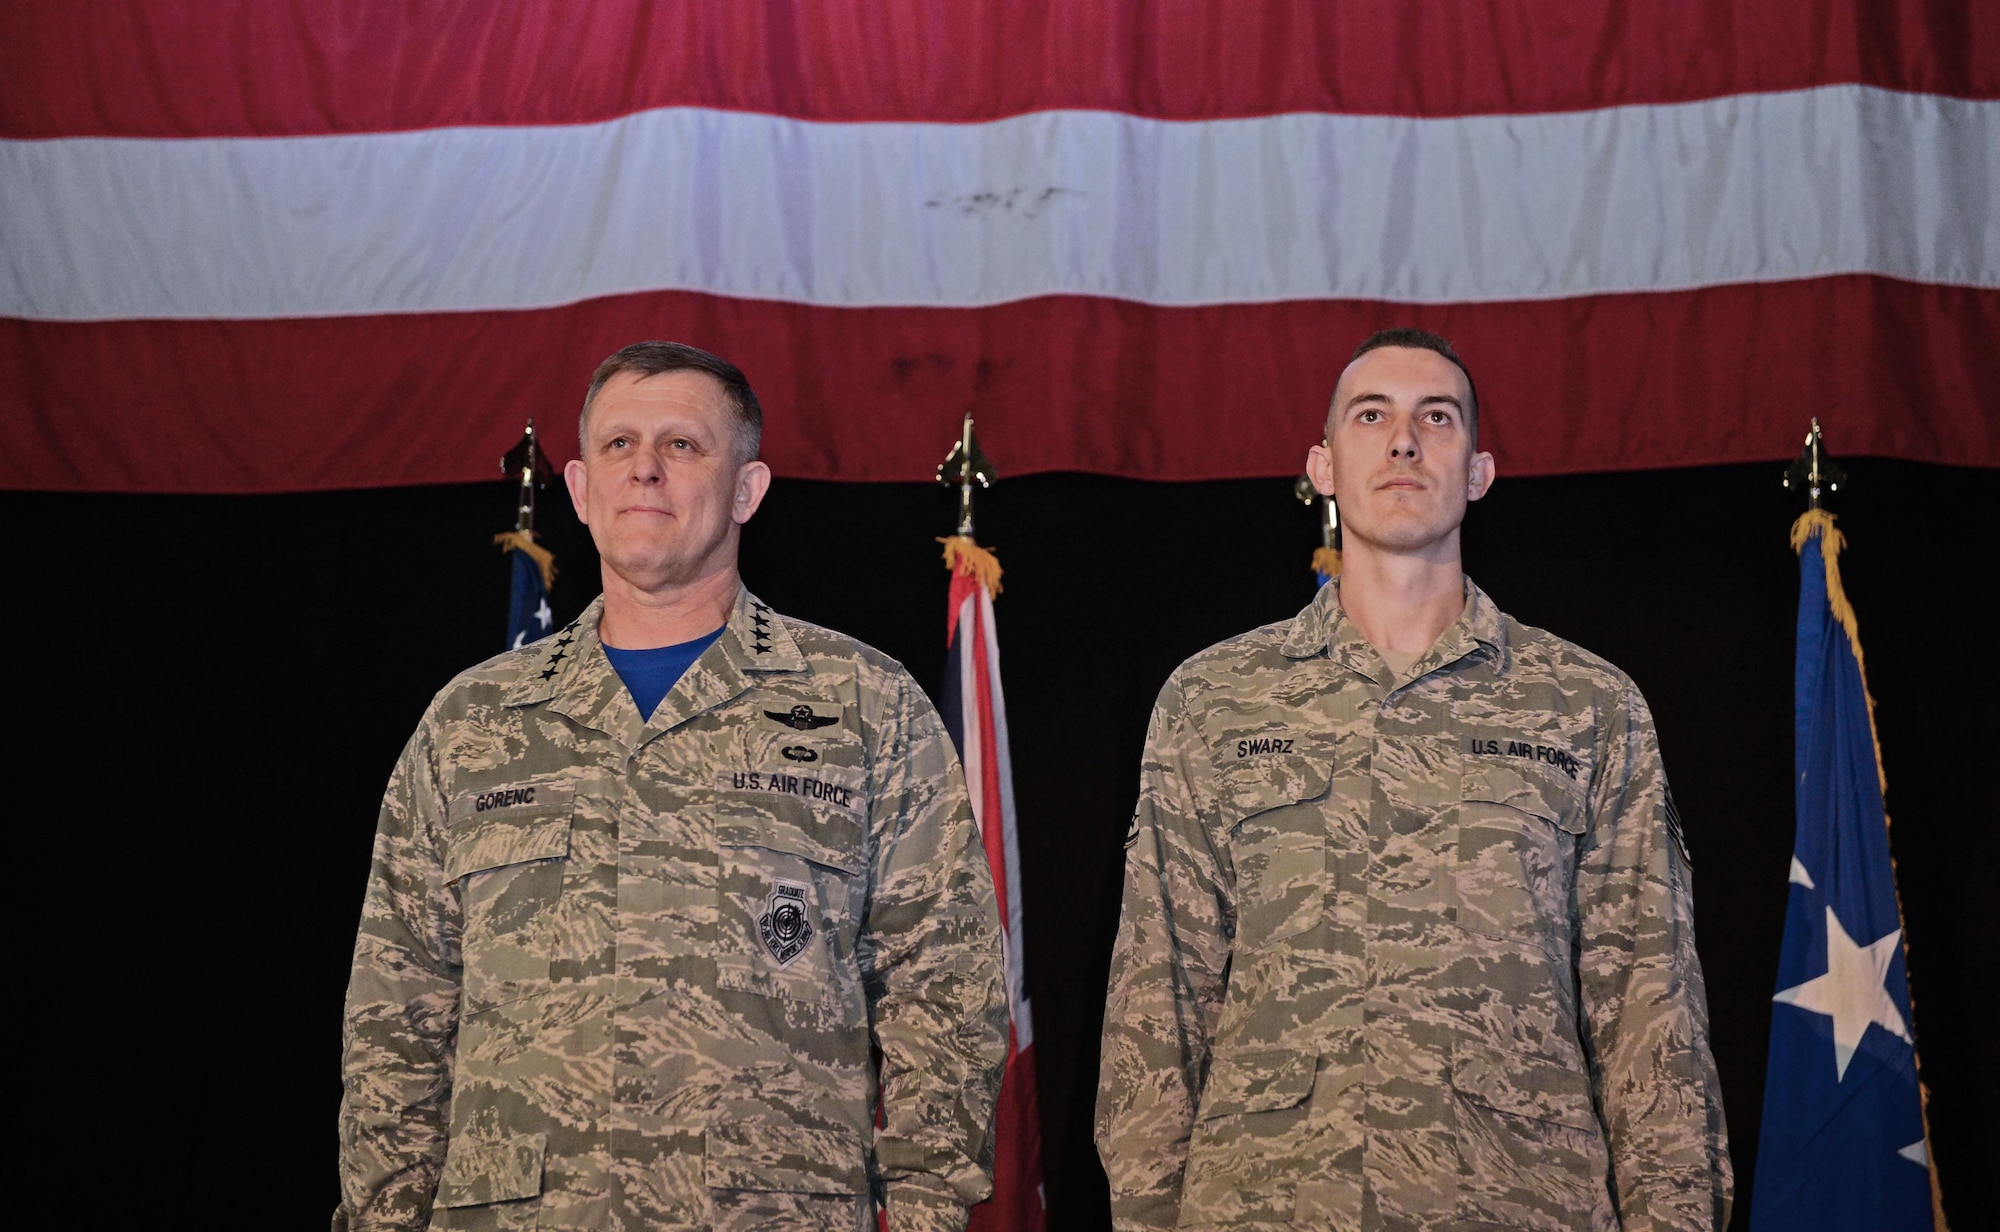 Gen. Frank Gorenc (left) and Staff Sgt. Greggory Swarz stand at attention during an Airman's Medal presentation March 13, 2015, at Royal Air Force Lakenheath, England. Swarz was recognized for his heroic actions on Jan. 26, 2015, when he saved the lives of three French airmen after a Hellenic air force F-16 Fighting Falcon crashed into the parking ramp at Los Llanos Air Base, Spain, during Tactical Leadership Program 15-1. Gorenc is the U.S. Air Forces in Europe and Air Forces Africa commander and Swarz is a 492nd Aircraft Maintenance Unit electrical environmental systems specialist. (U.S. Air Force photo/Airman 1st Class Dawn Weber)